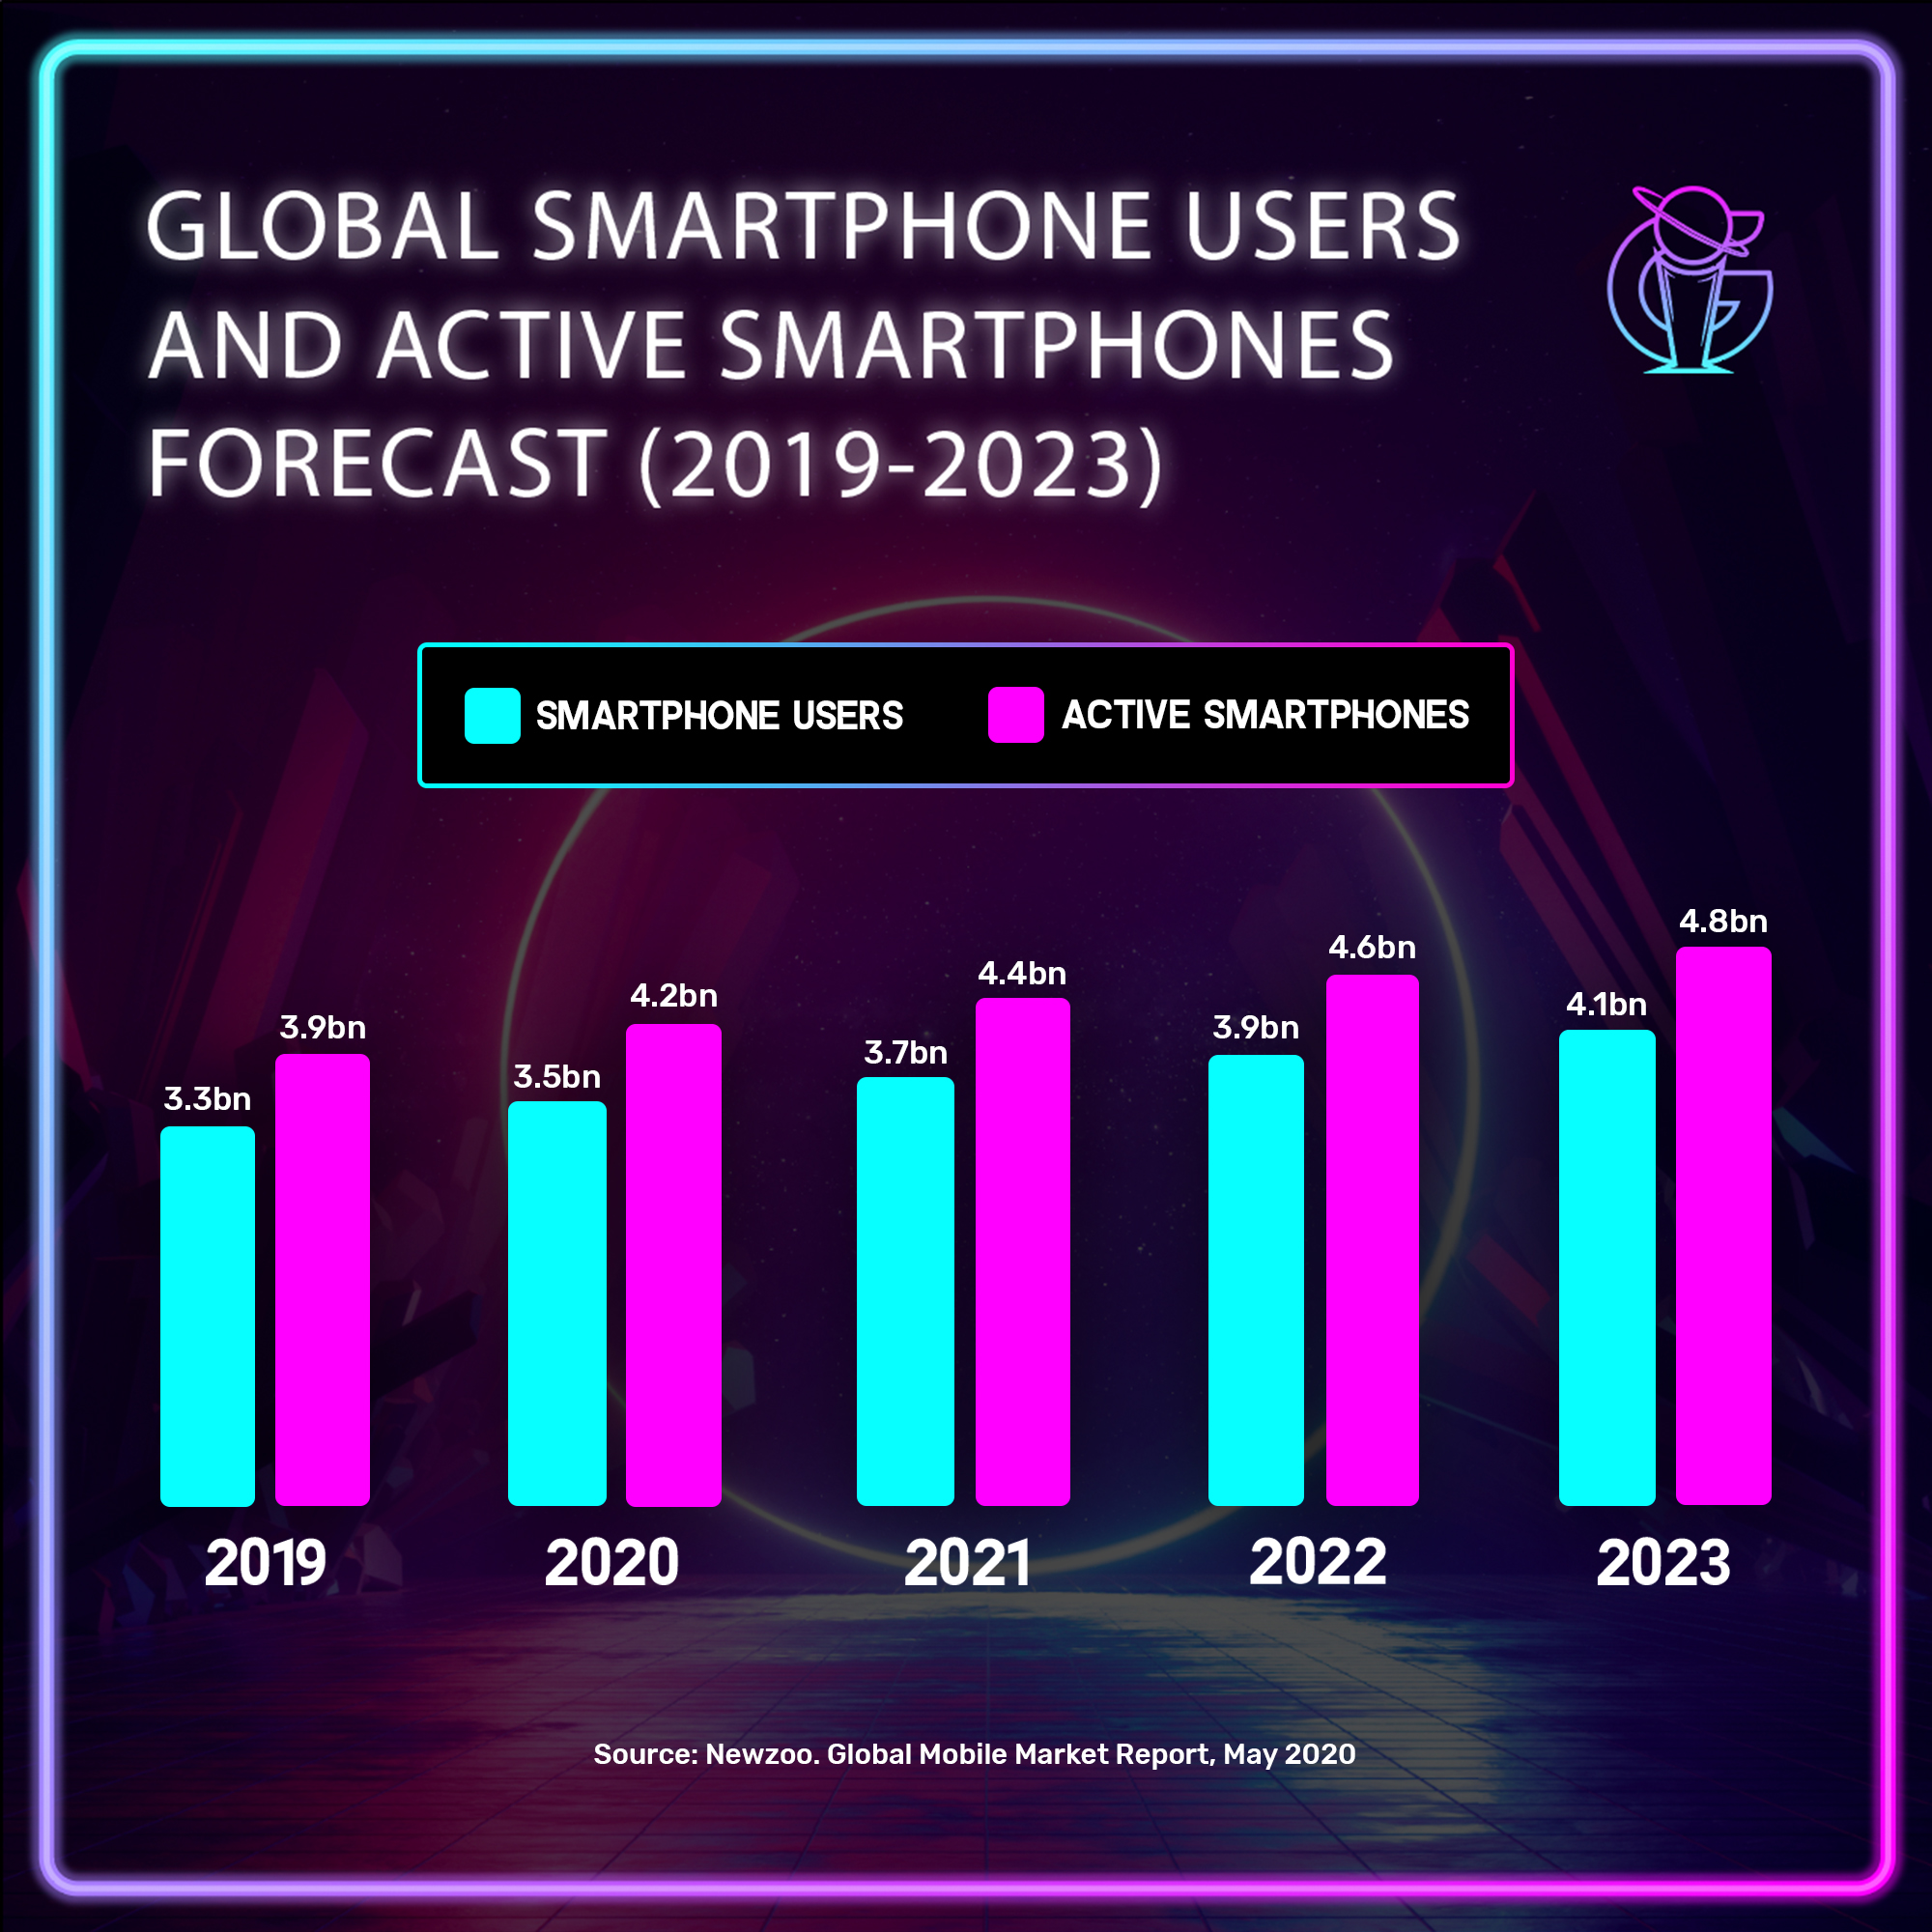 The mobile games market is forecasted to reach $102.8bn by 2023!